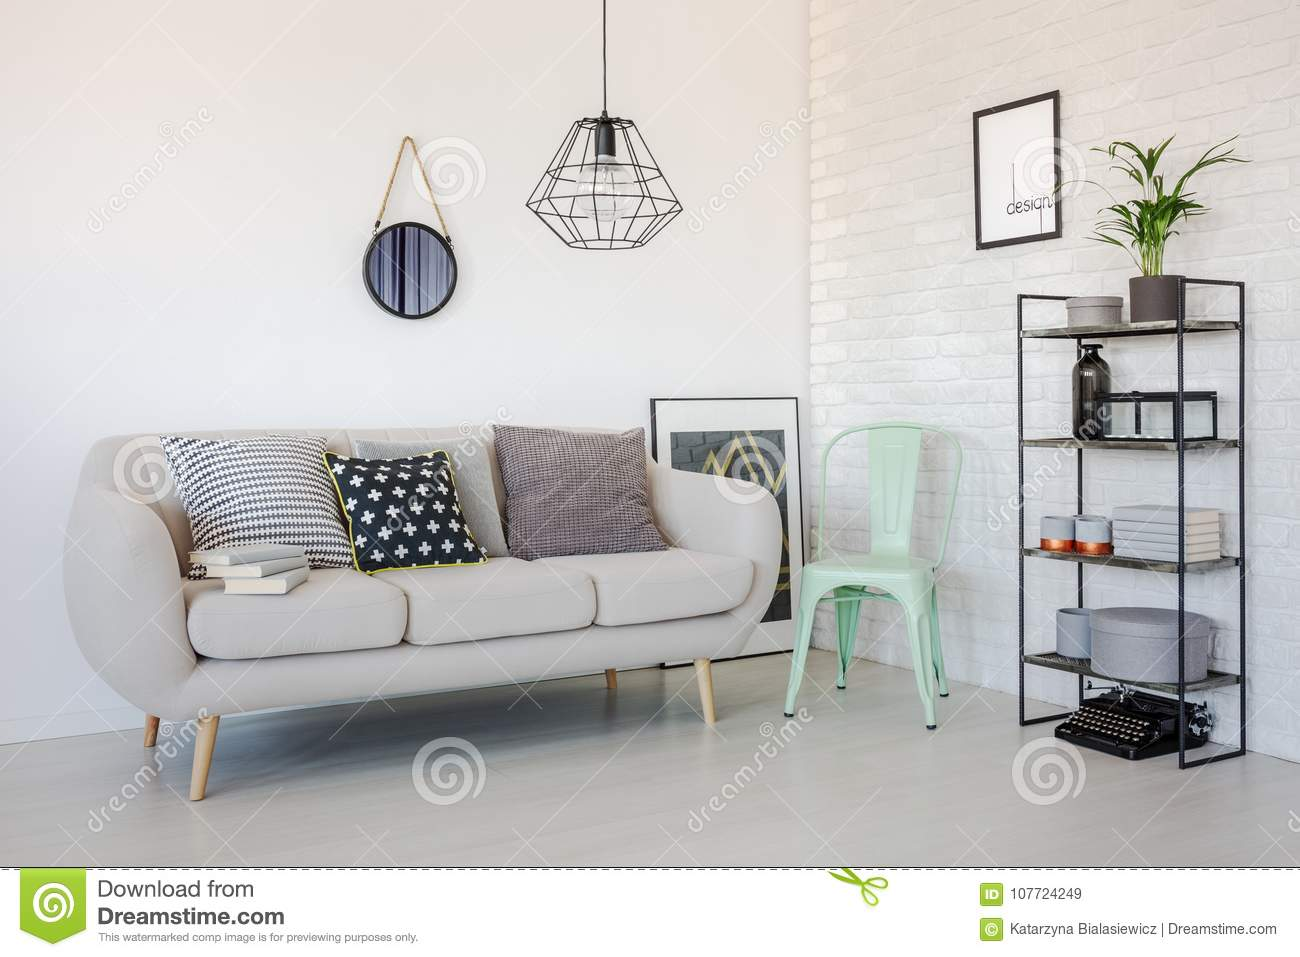 Mint chair in living room stock image. Image of chair - 107724249